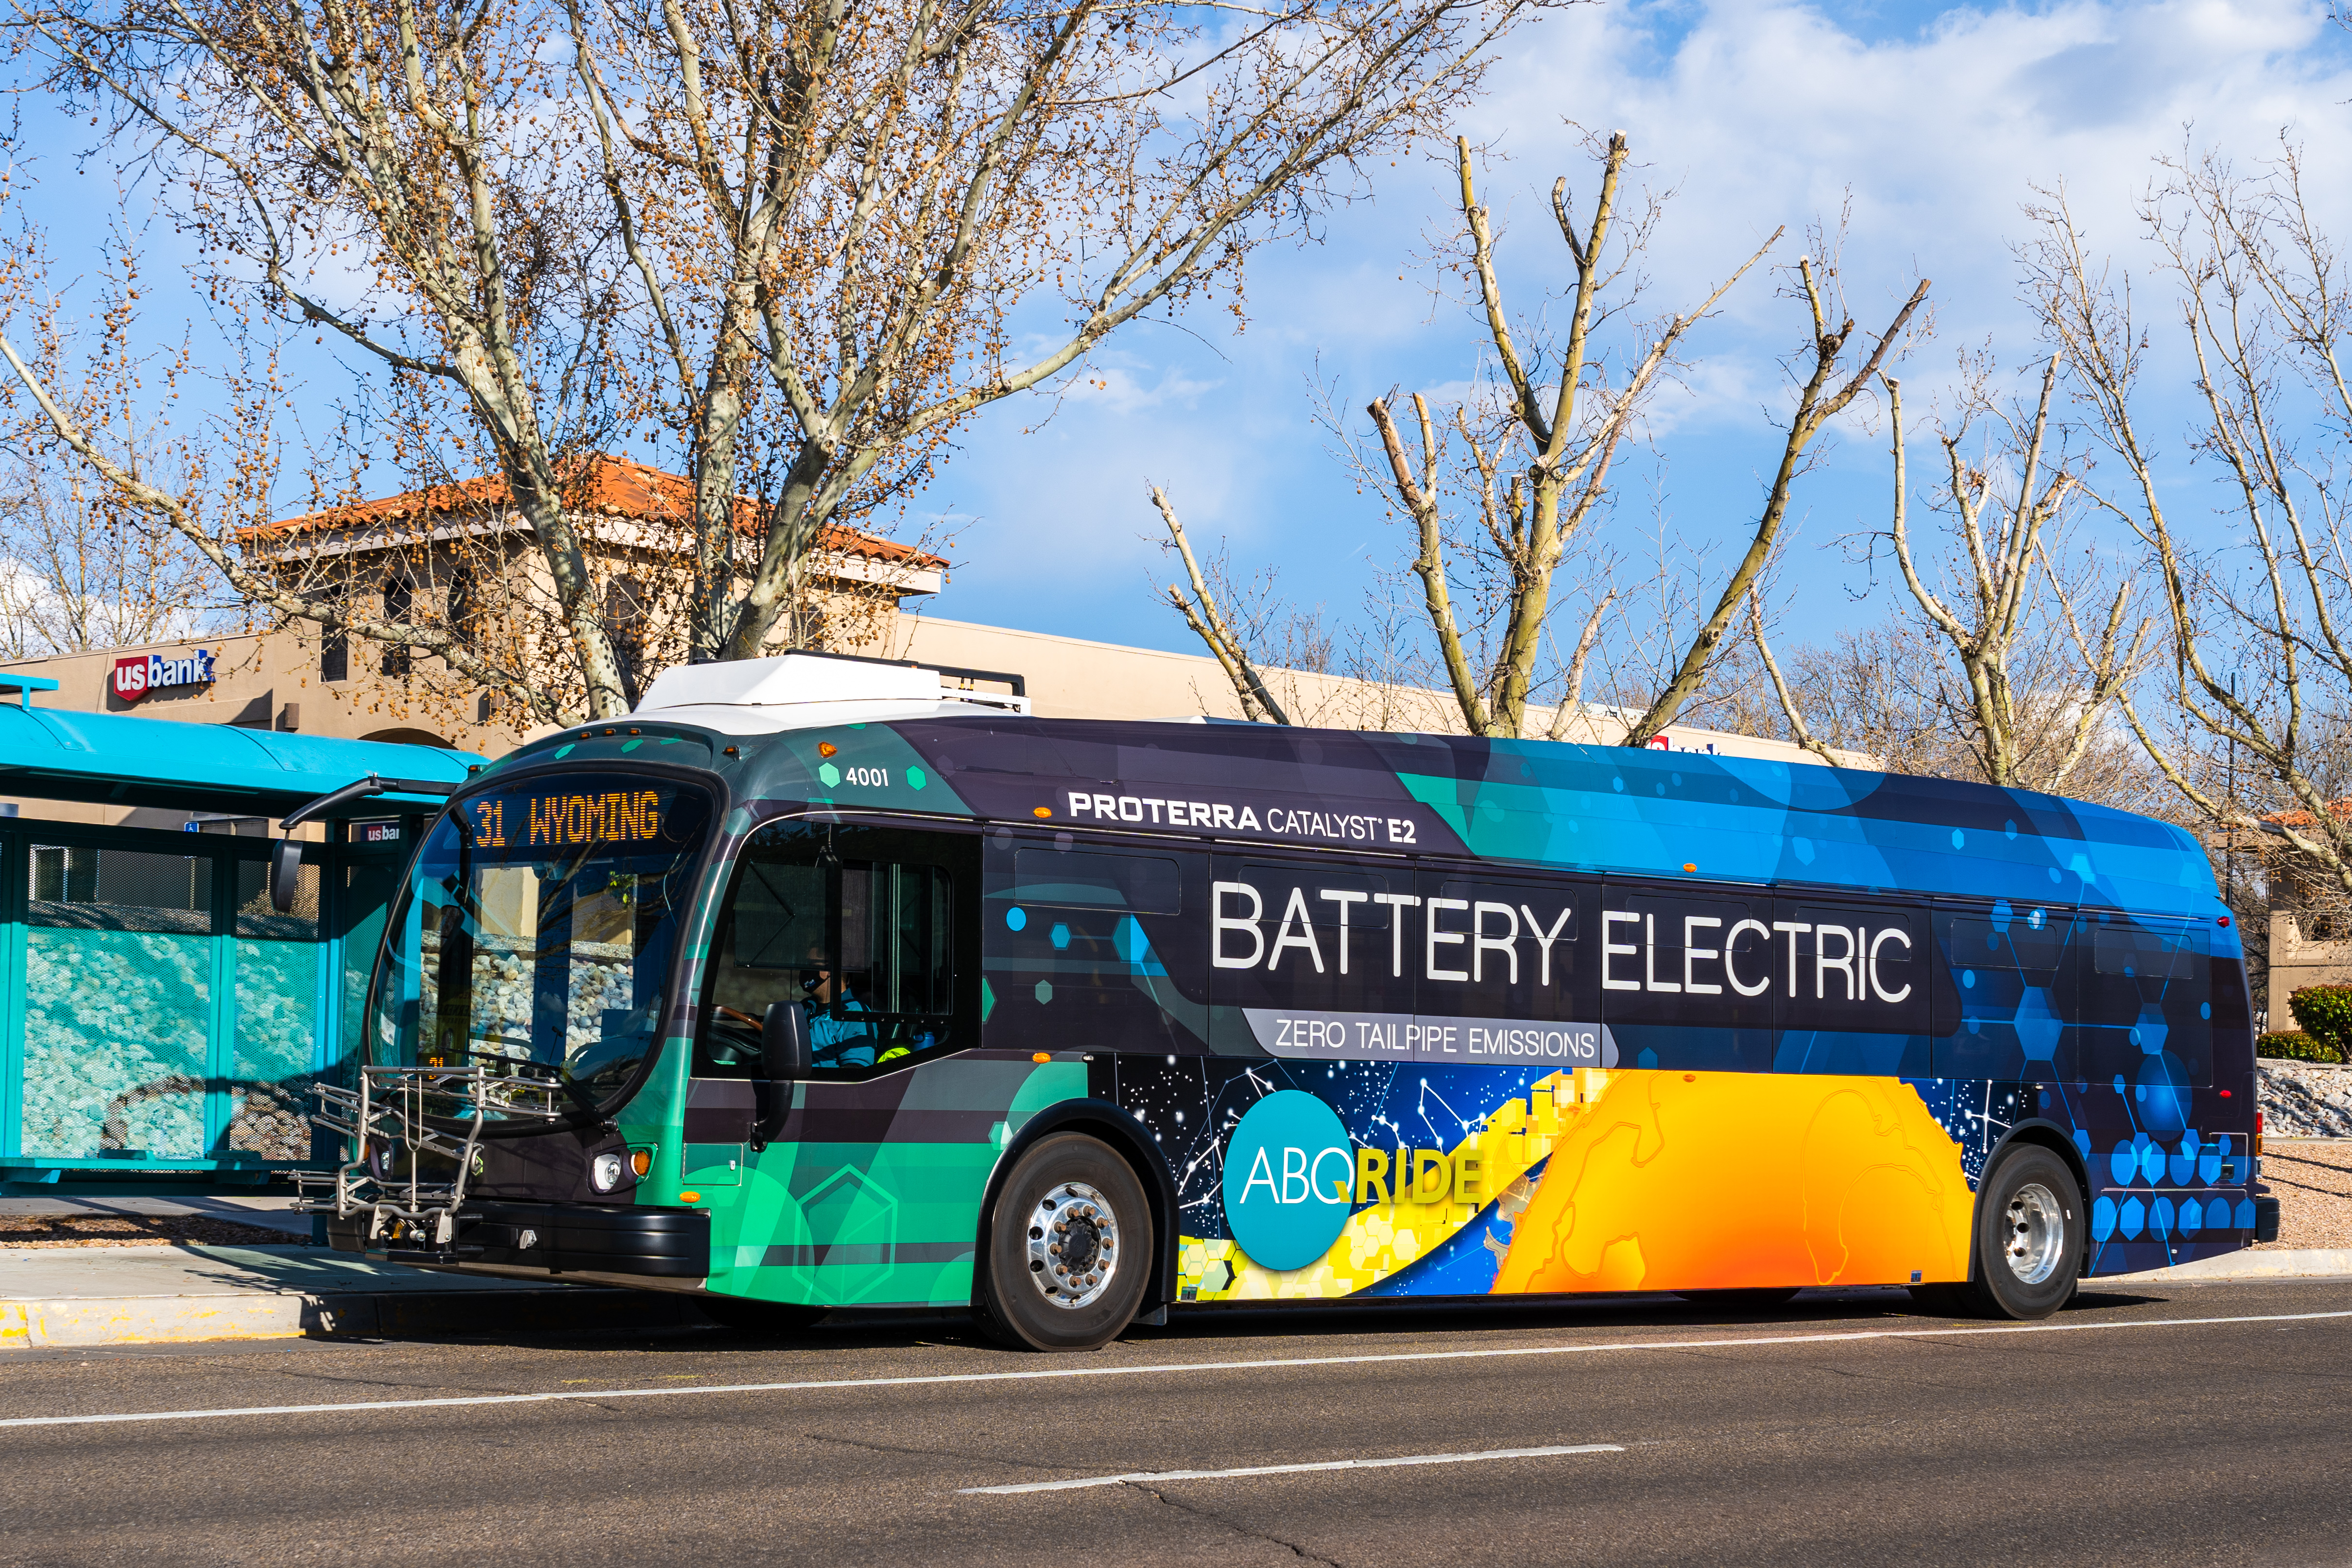 A photo of an electric bus.